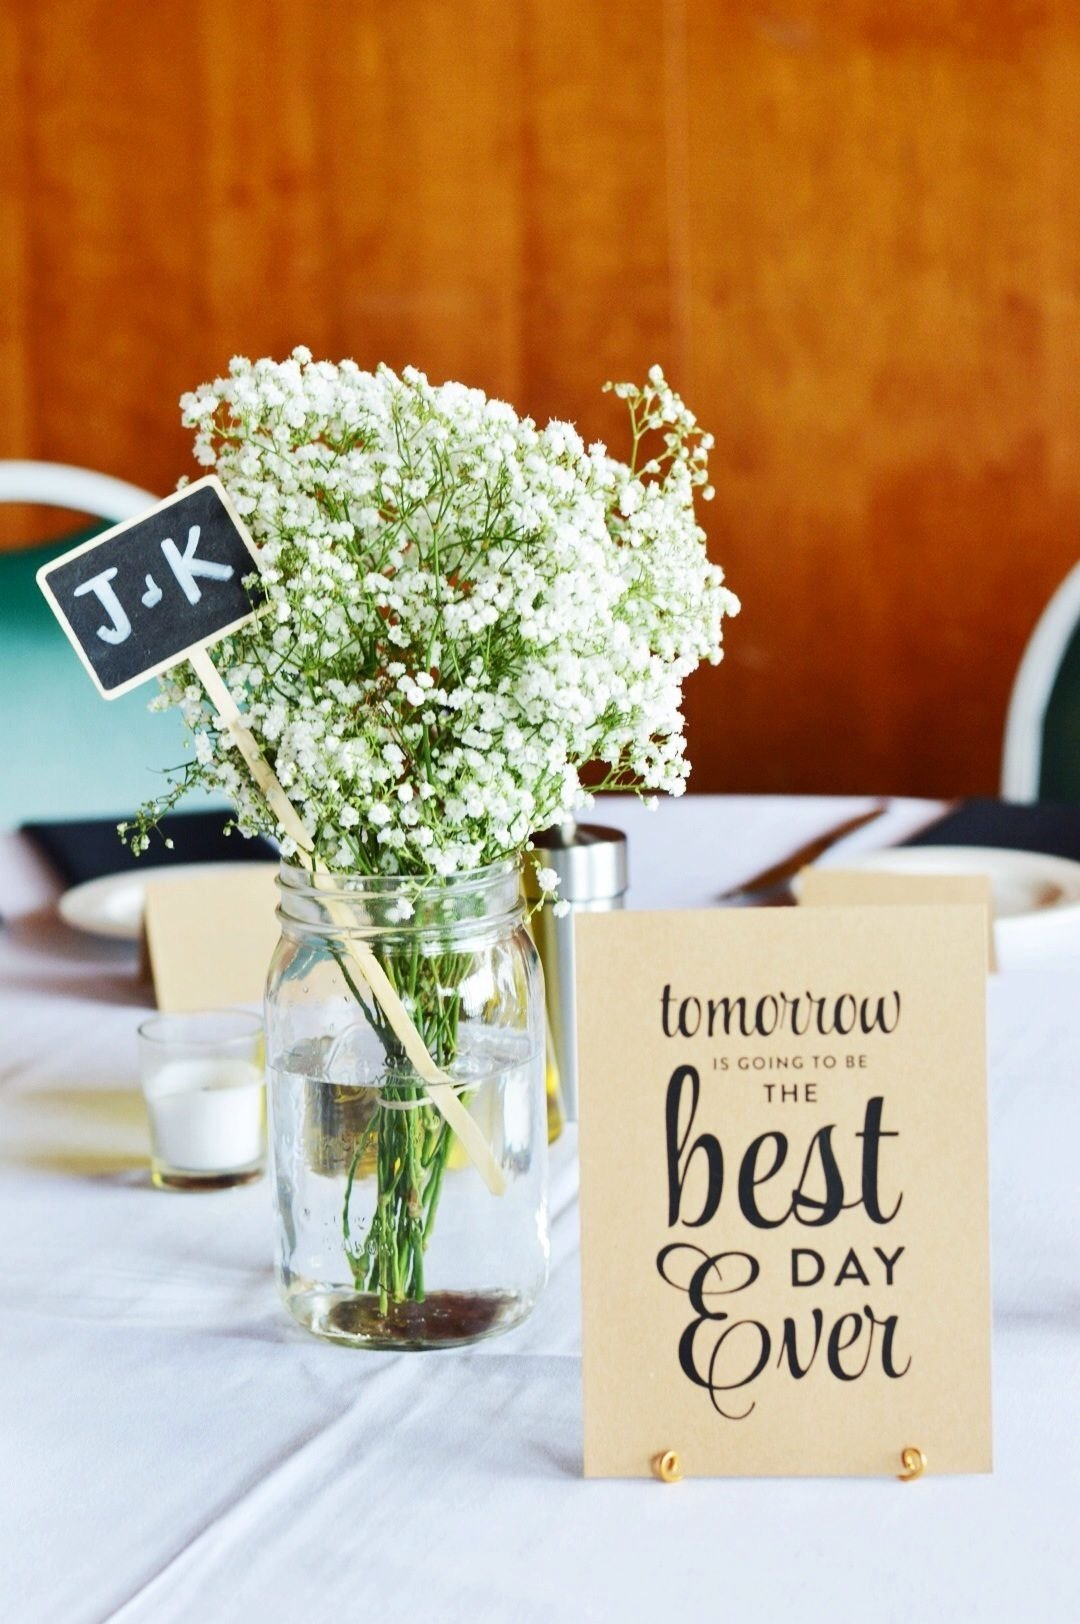 10 Best Wedding Rehearsal Dinner Ideas Decorations rehearsal dinner decor rehearsal dinners centerpieces and dinners 2020